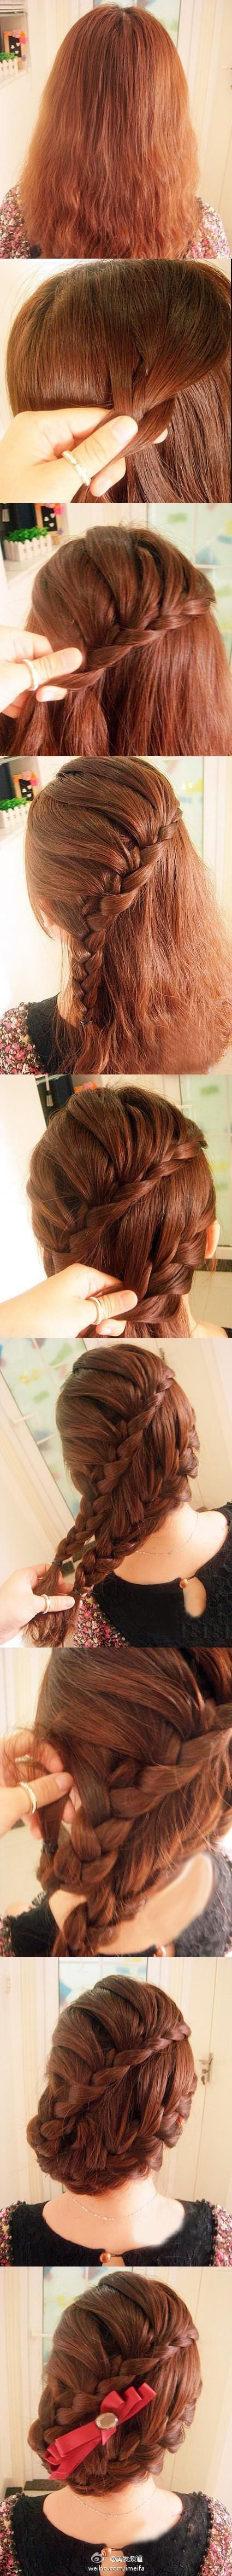 Latest Party Hairstyles Tutorial Step by Step with Pictures2015-2016 (29)